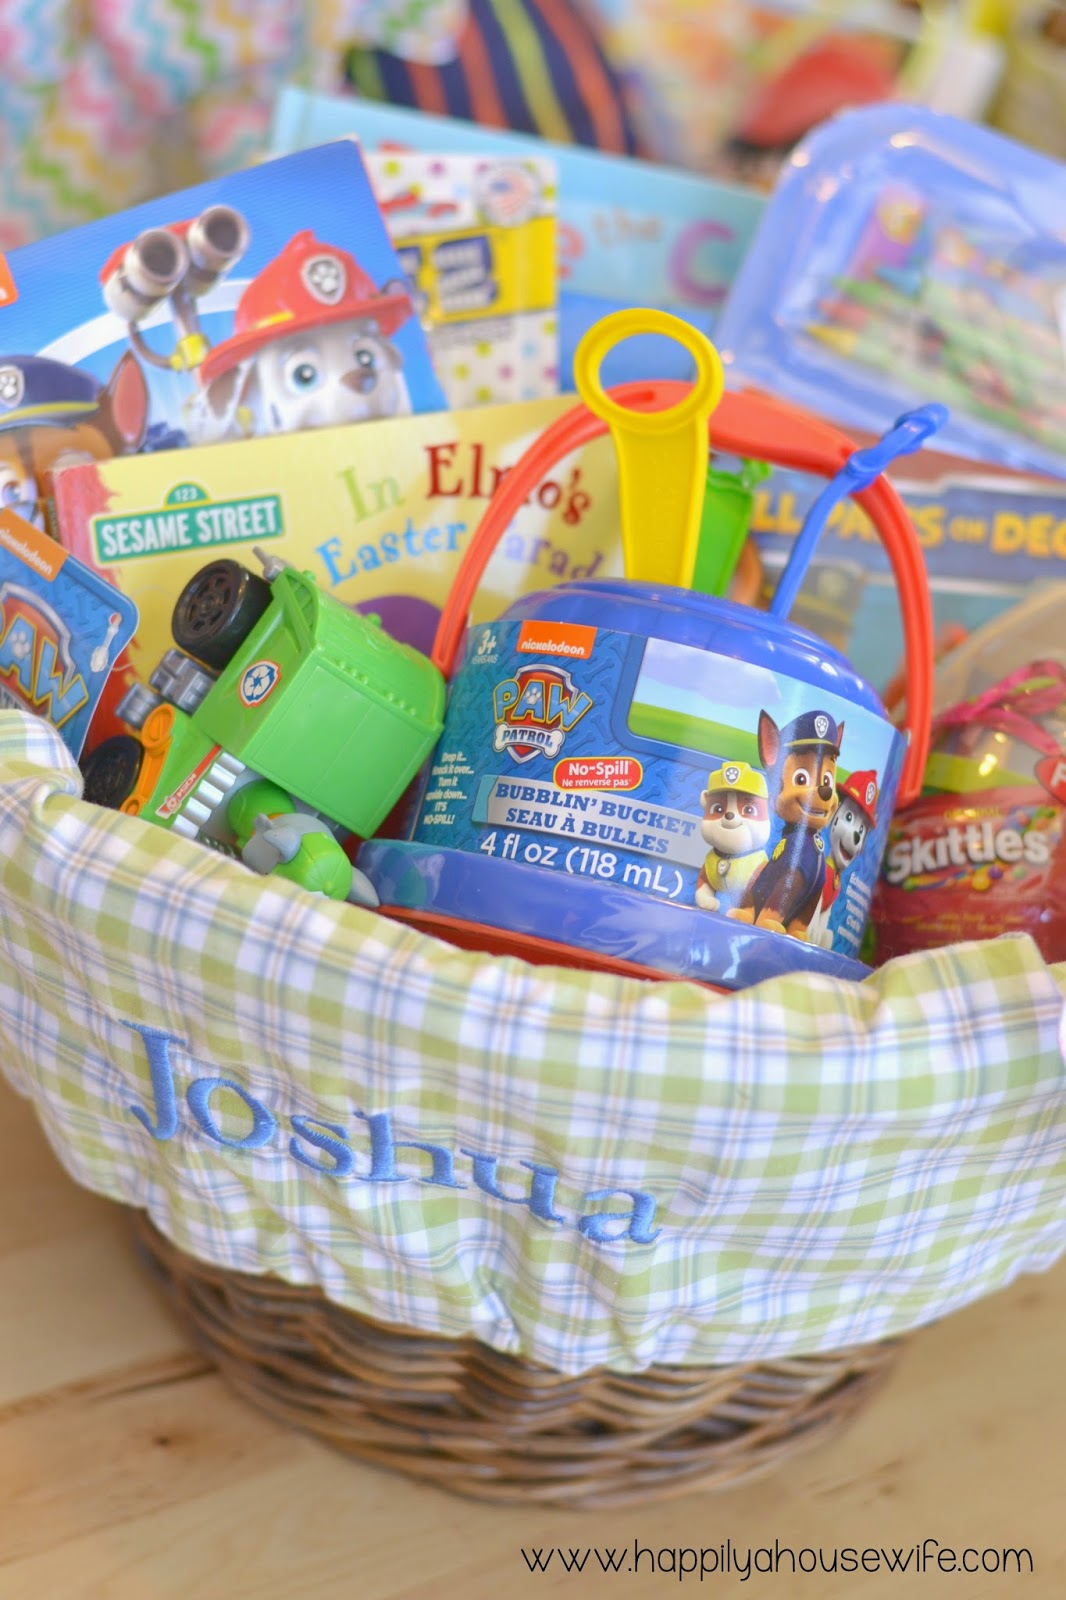 Happily a housewife easter basket ideas for kids joshua boy age 2 loves paw patrol negle